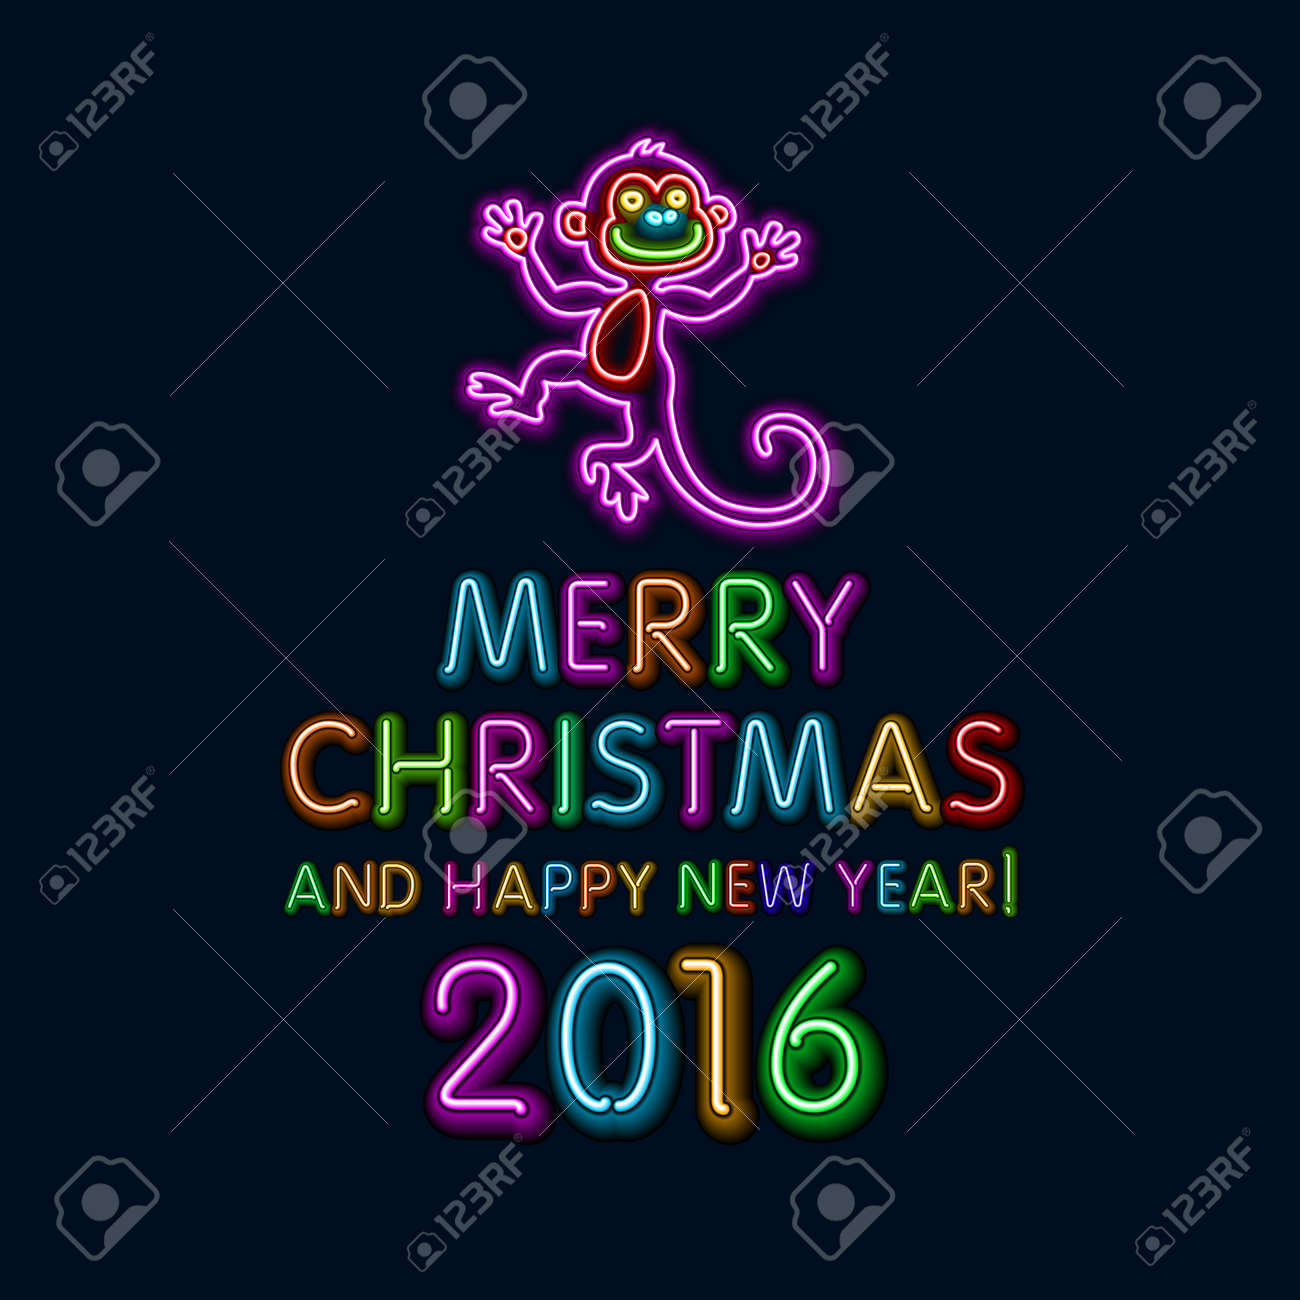 vector vector illustration of 2016 new year outline neon light background for design website banner holiday party element template